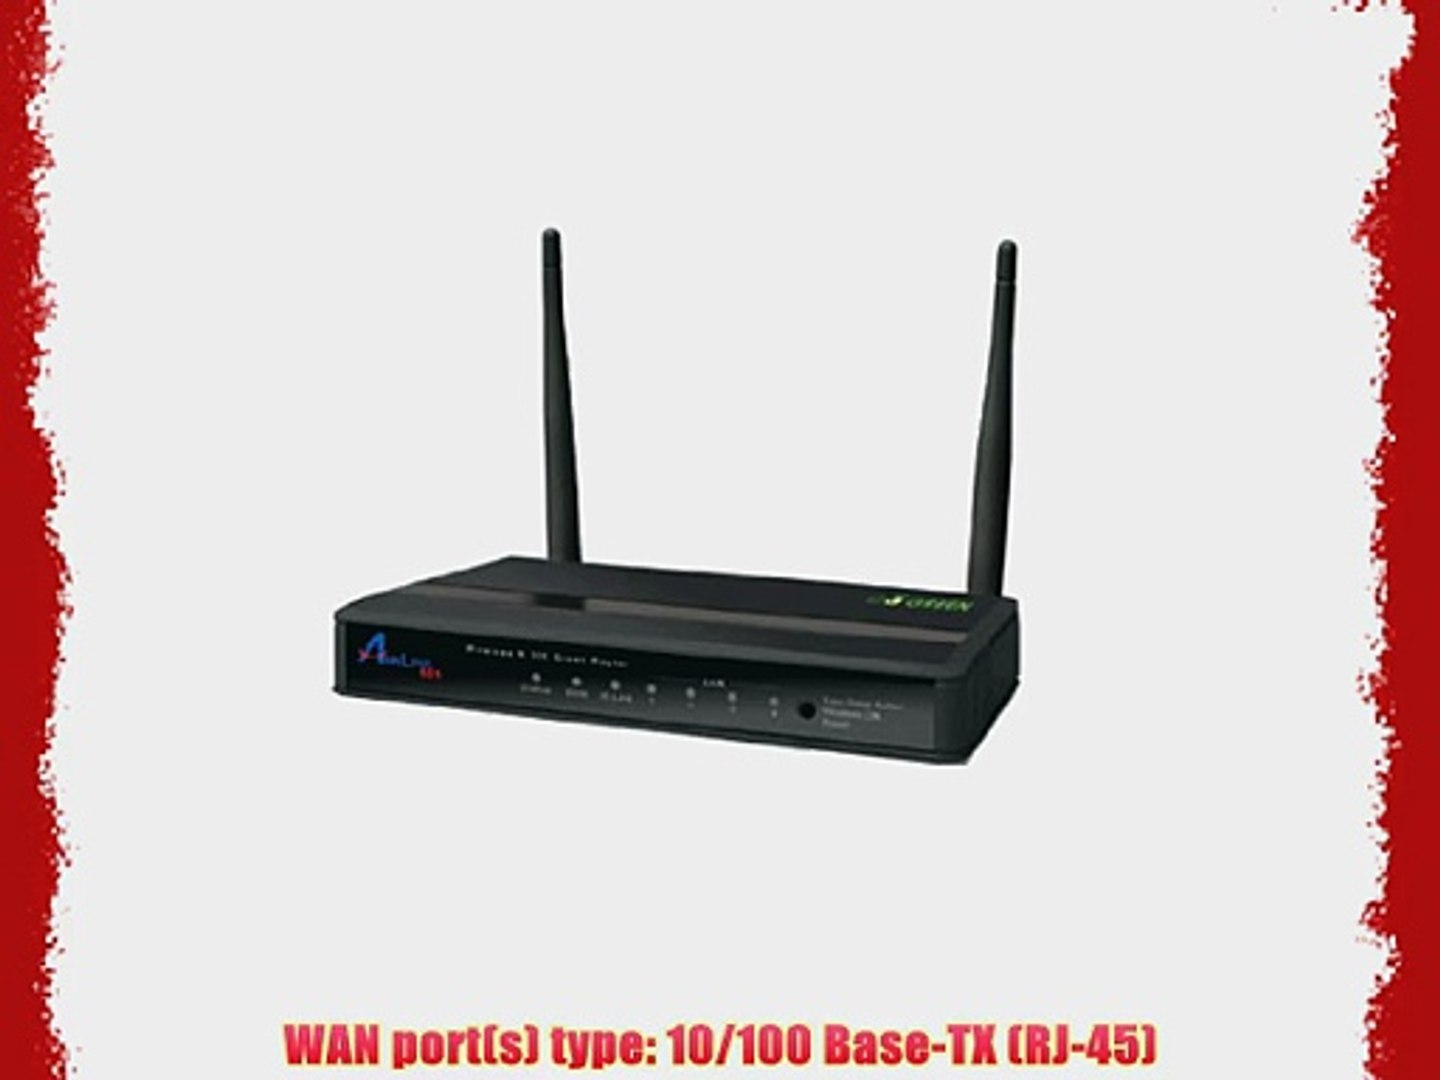 RJ-45 Airlink 101 Wireless N 300MBPS Router 10//100 Base-TX AR686W